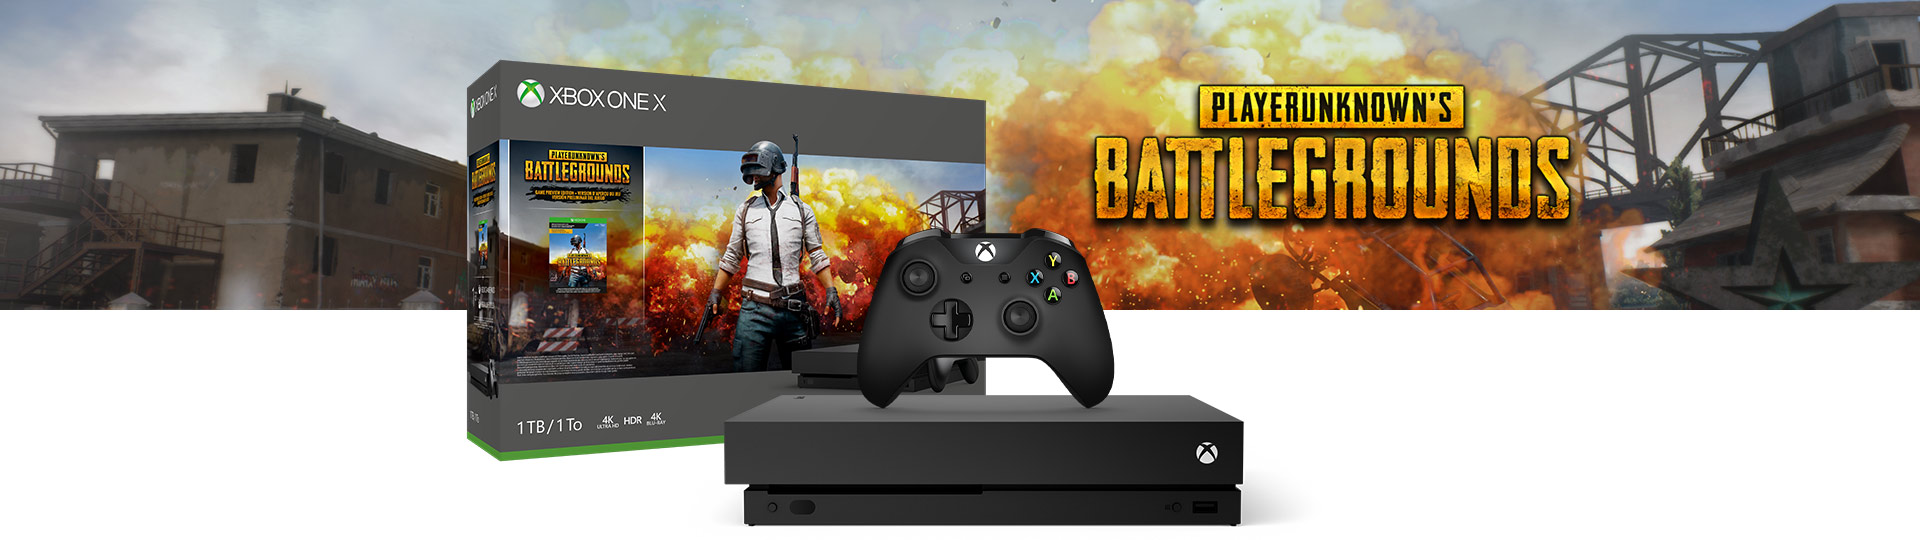 Xbox One X and Controller next to the Xbox One X PlayerUnknown's Battlegrounds 1 terabyte product box